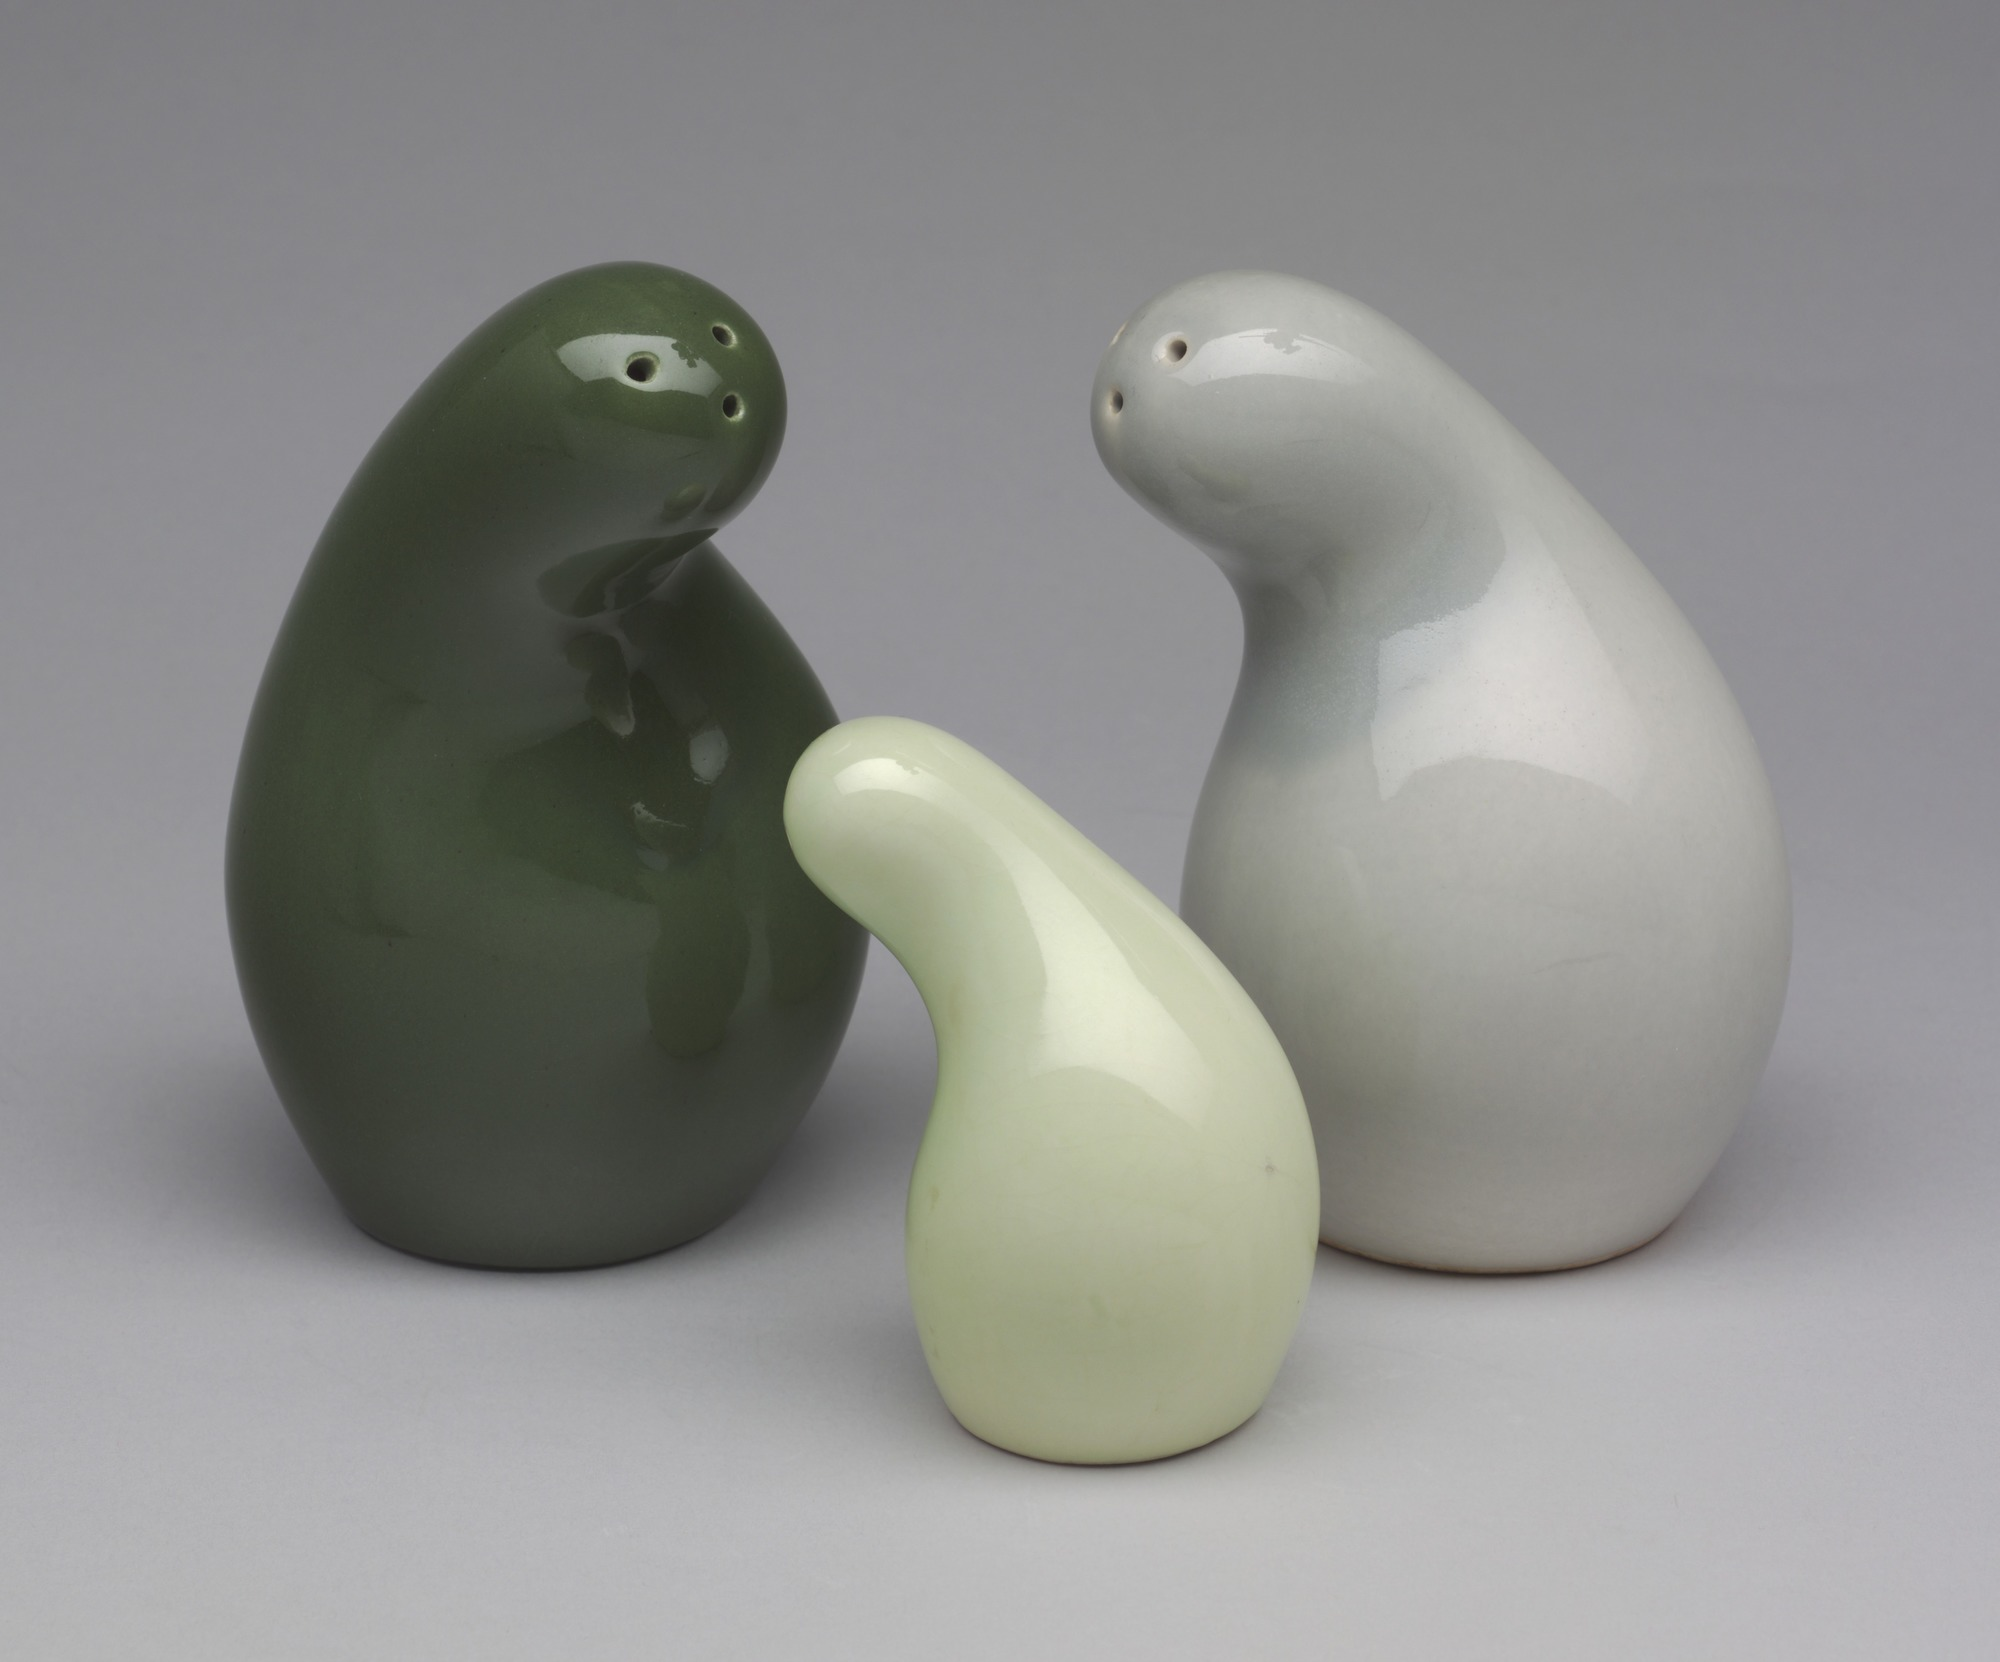 Eva Zeisel, Town and Country Salt and Pepper Shakers, c. 1945, Red Wing Pottery, MN, Glazed earthenware, Museum of Modern Art, Object number 405.1994.1-3